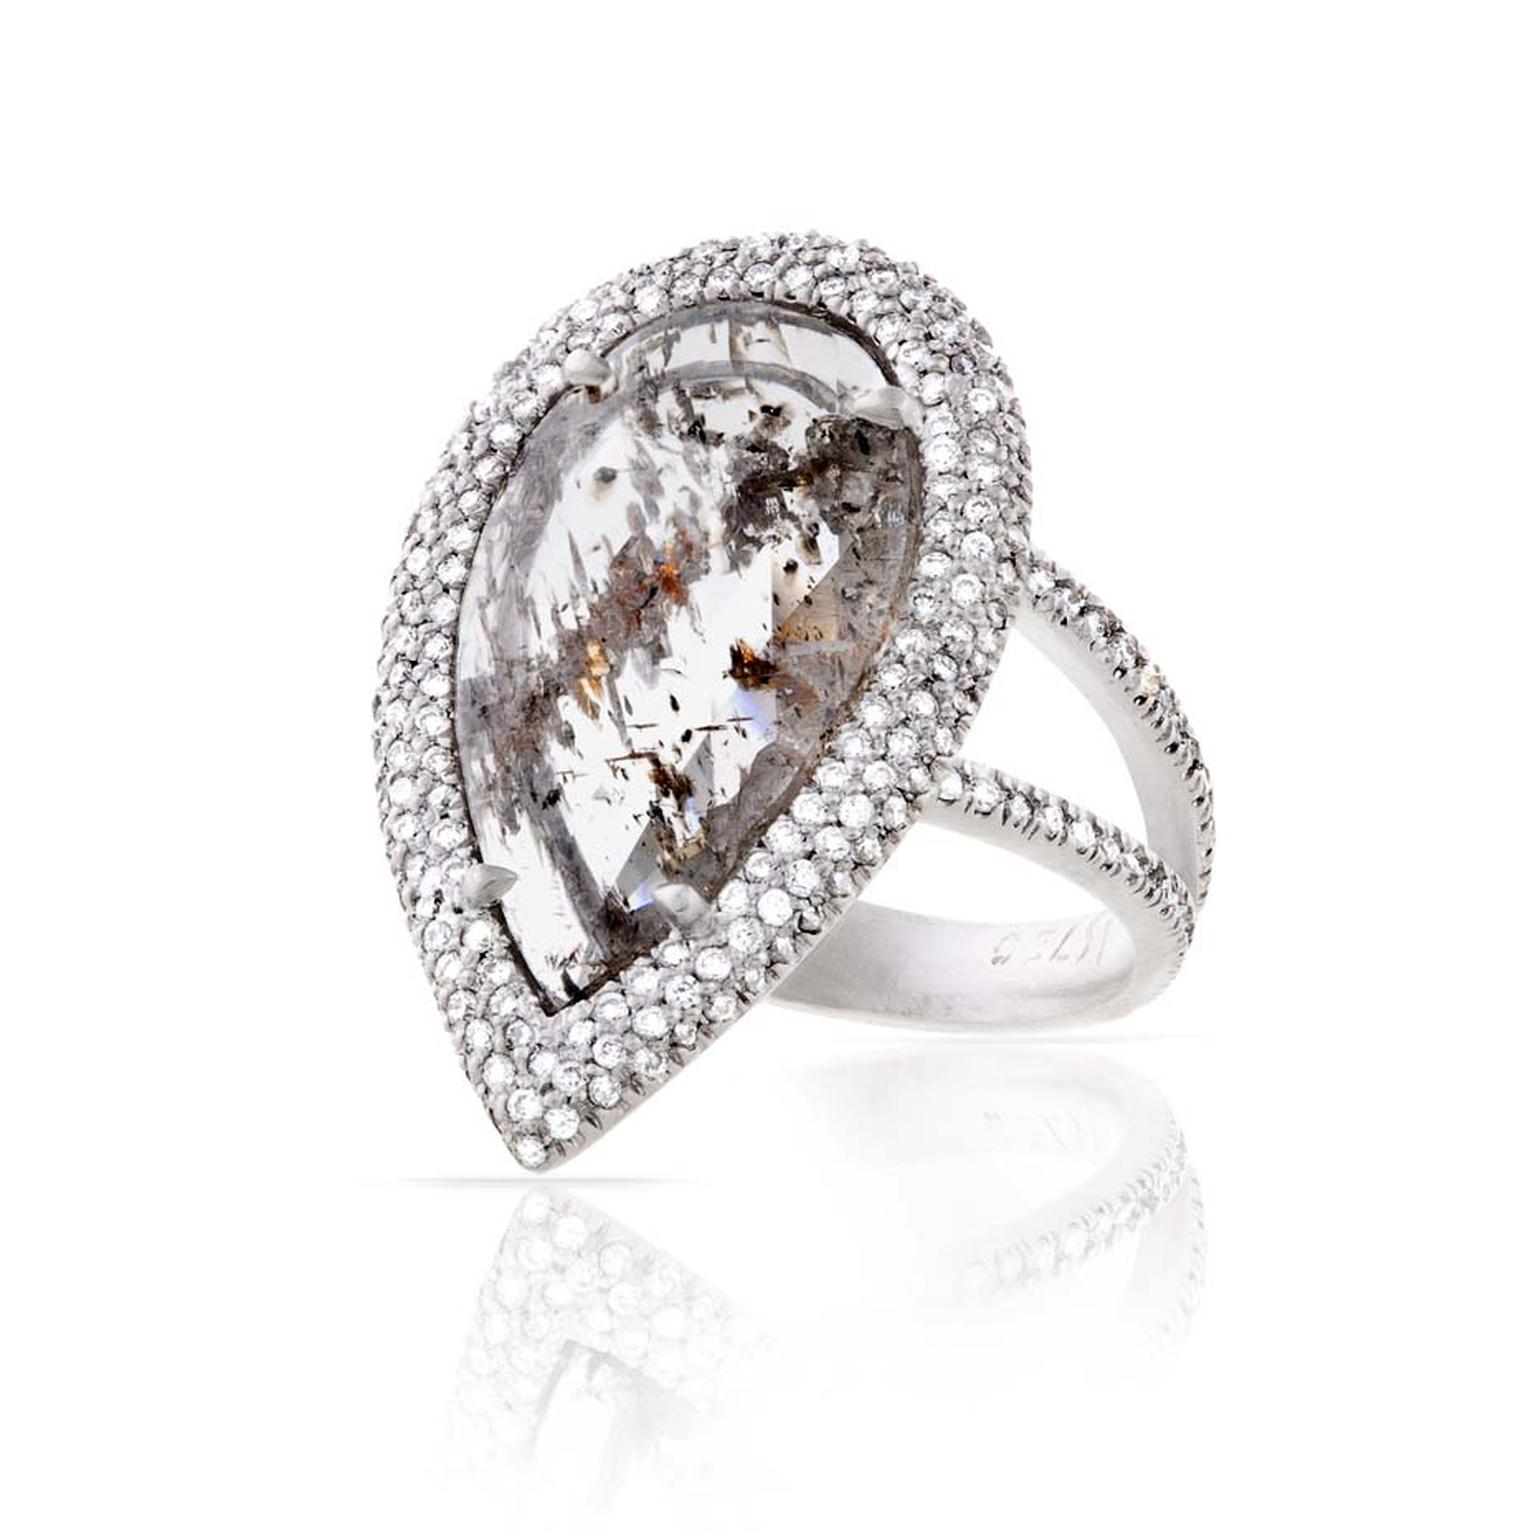 Loriann Stevenson diamond slice ring with a clear rustic diamond and white pavé diamonds set in white gold ($40,052).